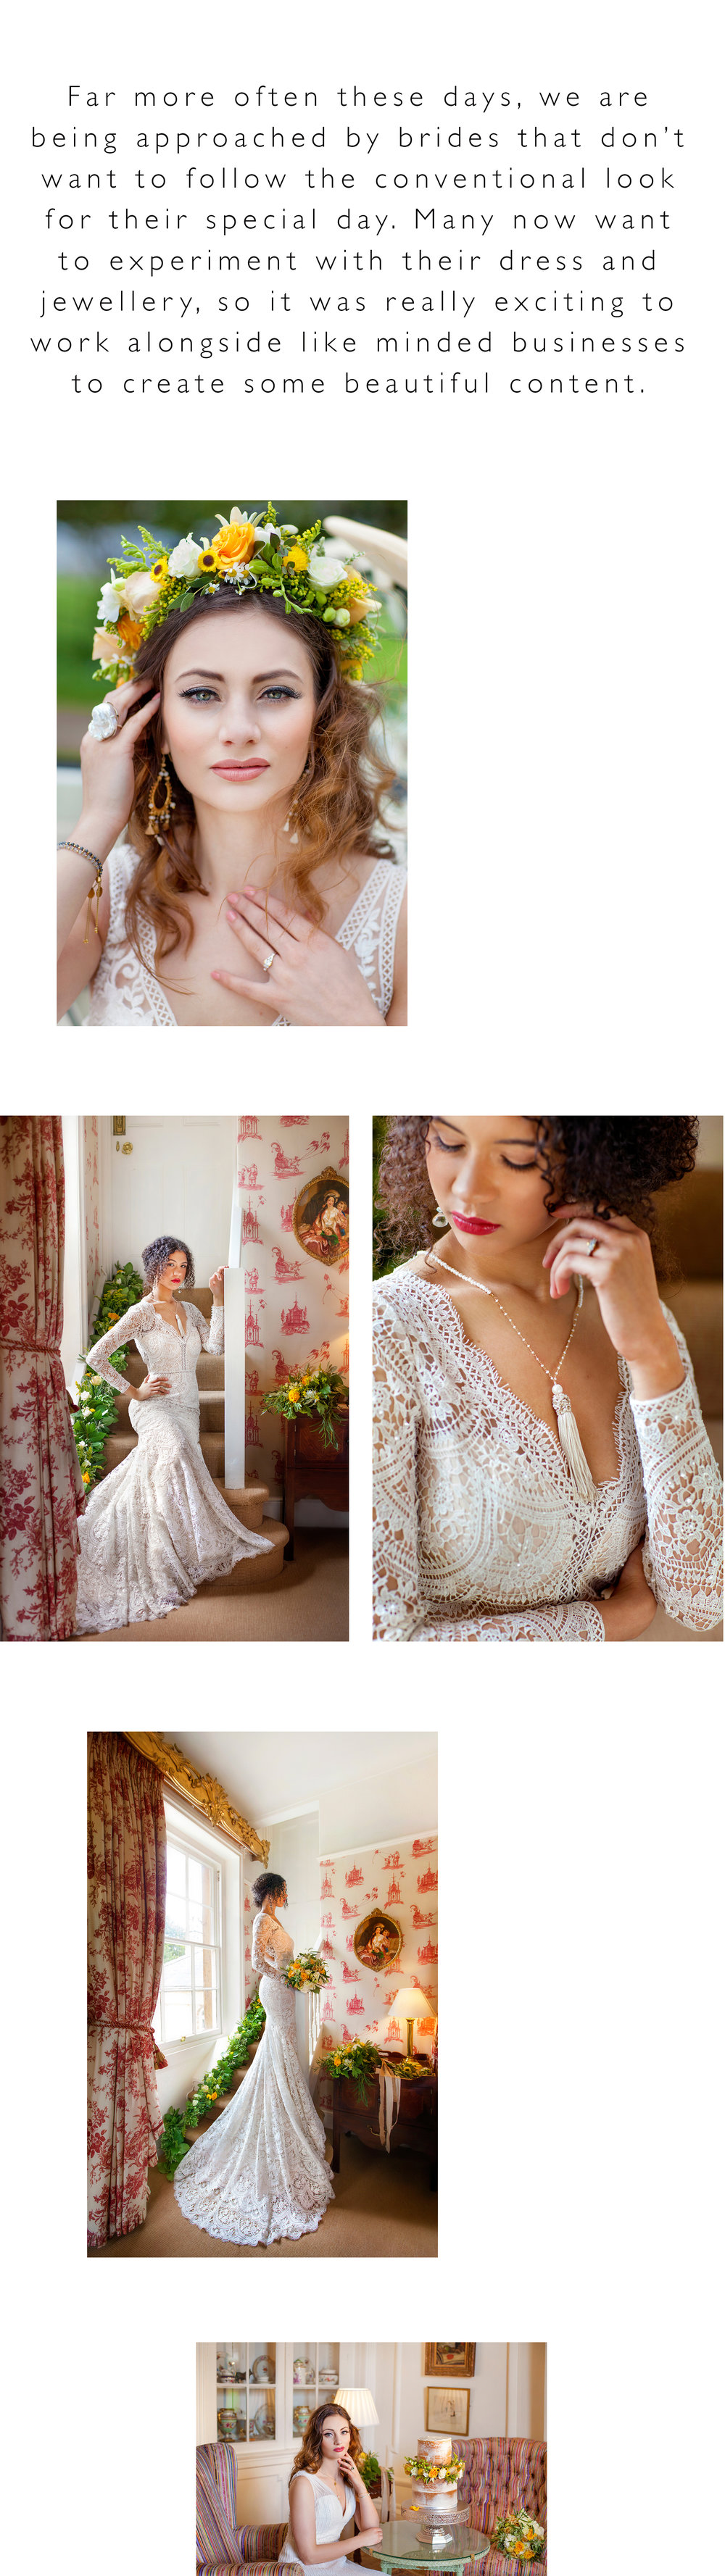 Boho Bride Shoot Page 3.jpg